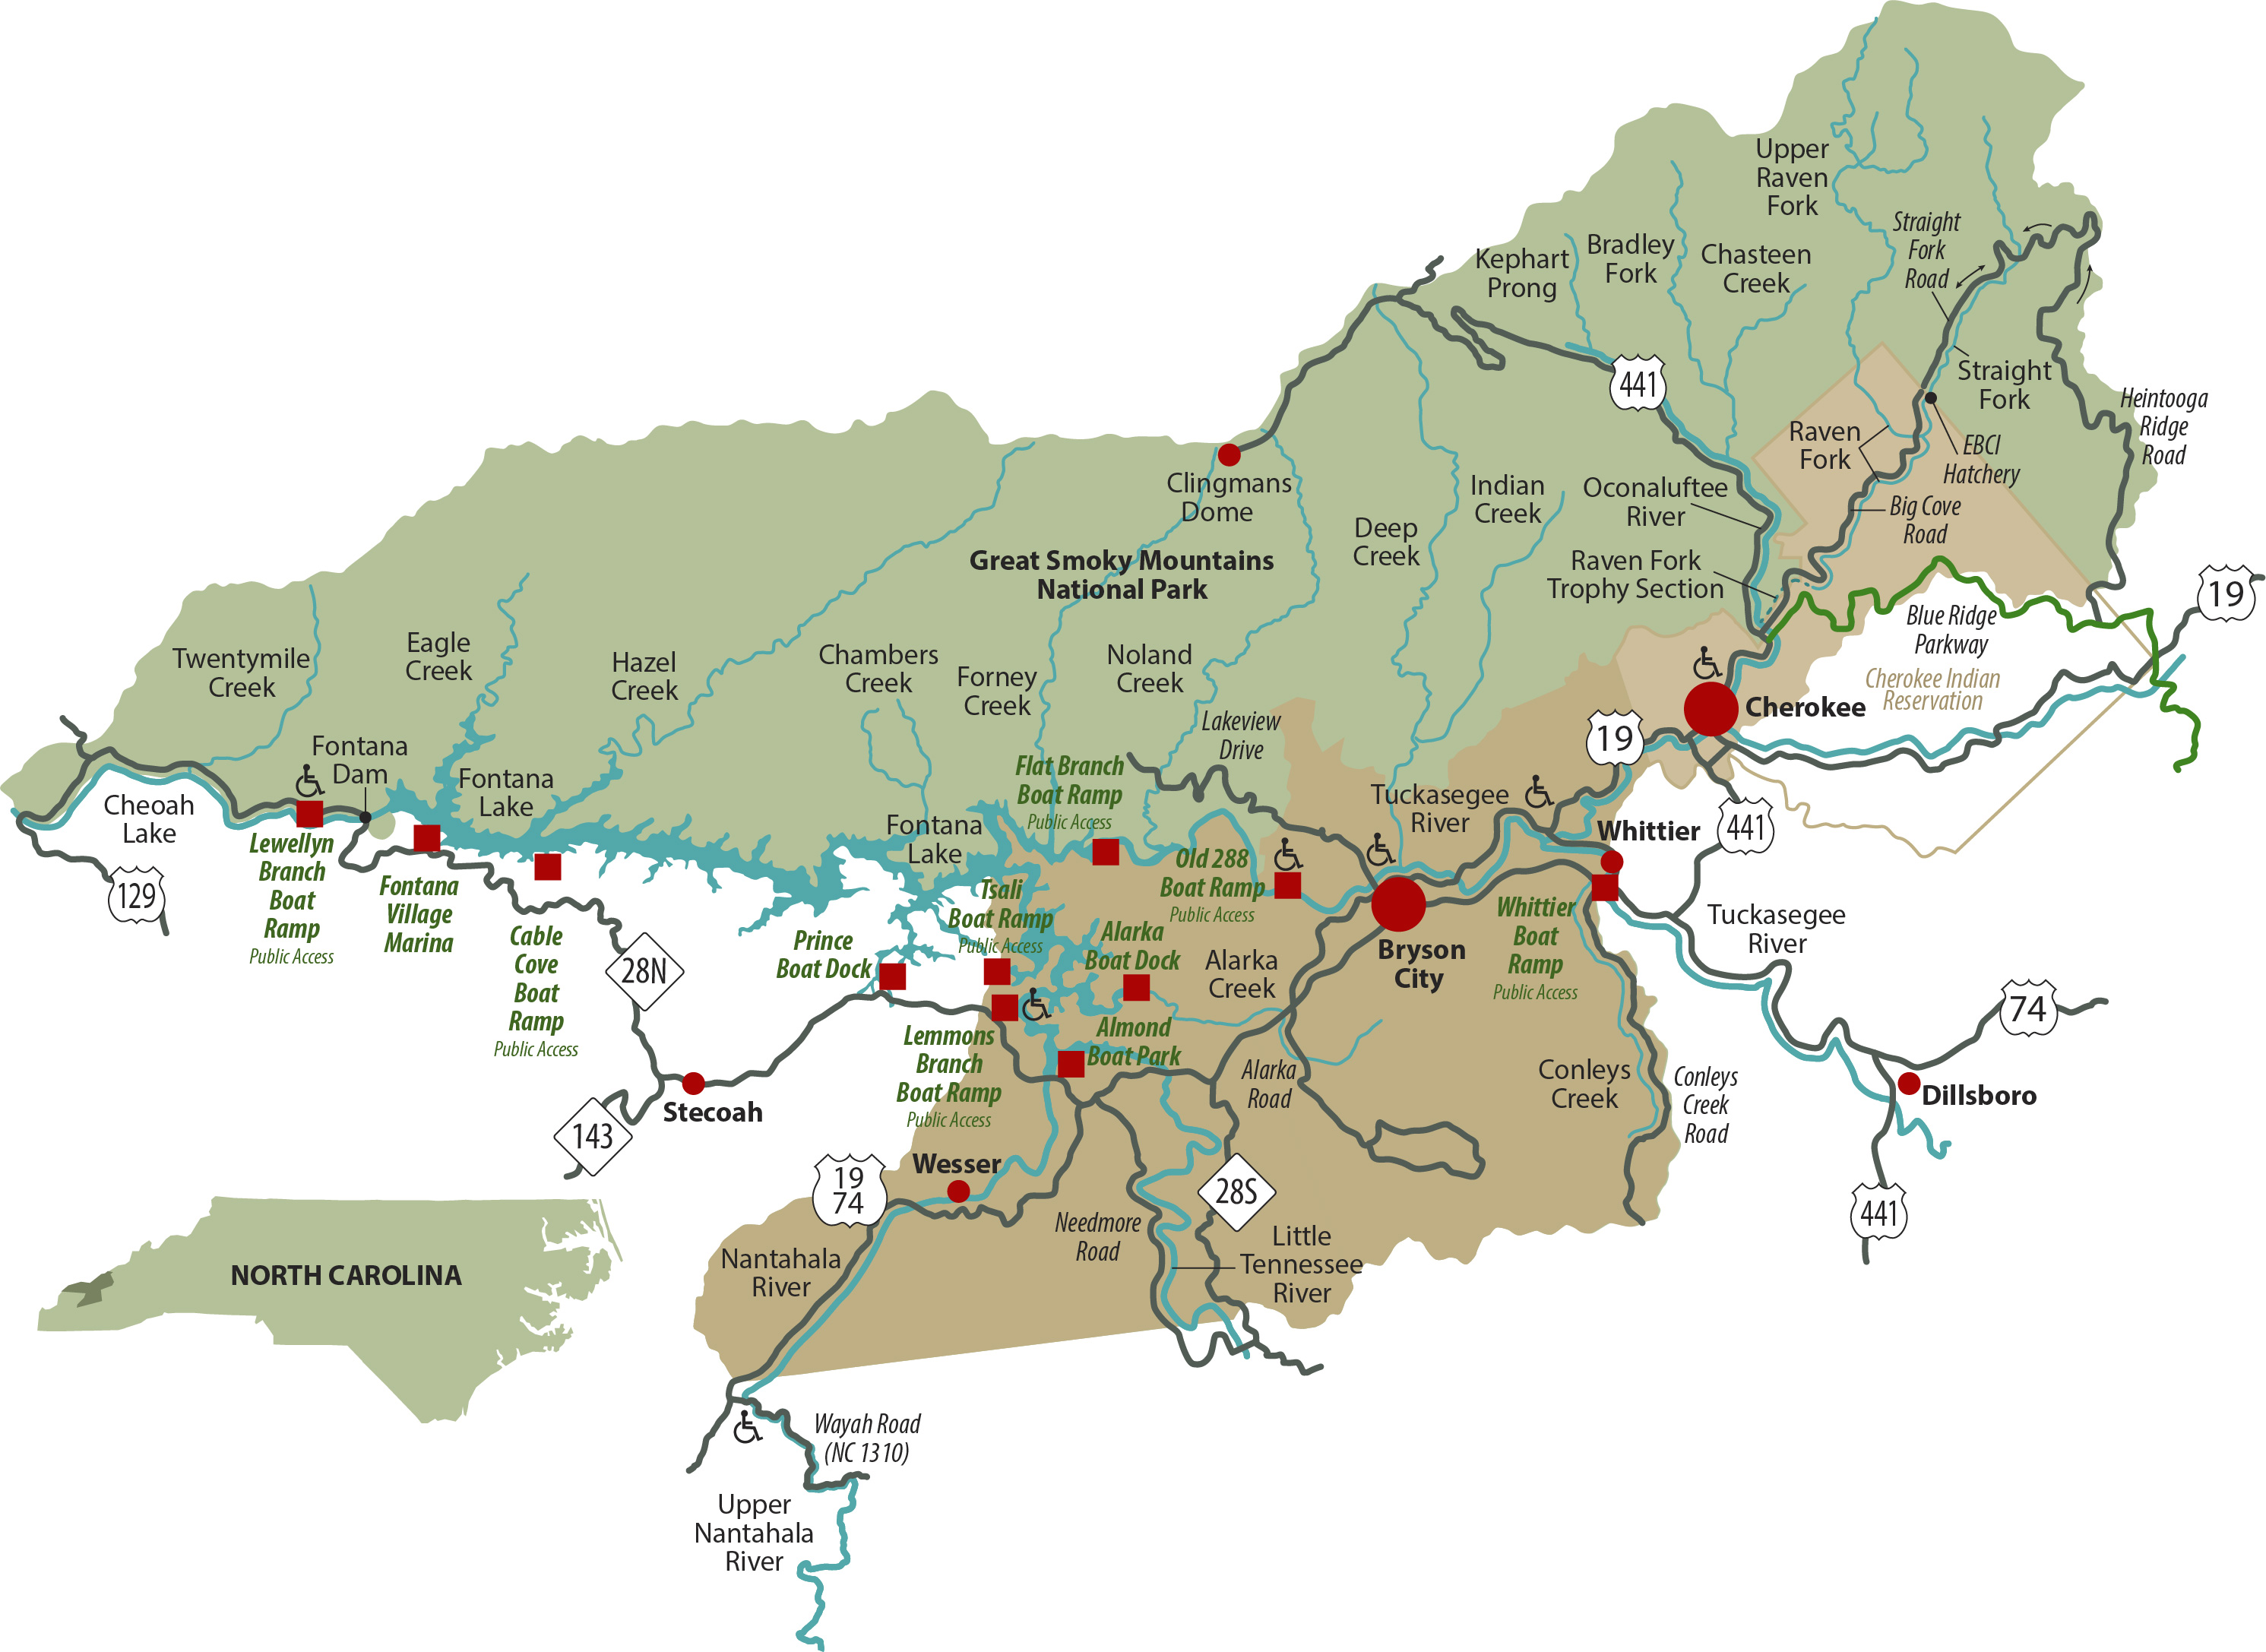 Trout Fishing In Tennessee Map.Bryson City Nc Area Fishing Map For The Smokies Including Cherokee